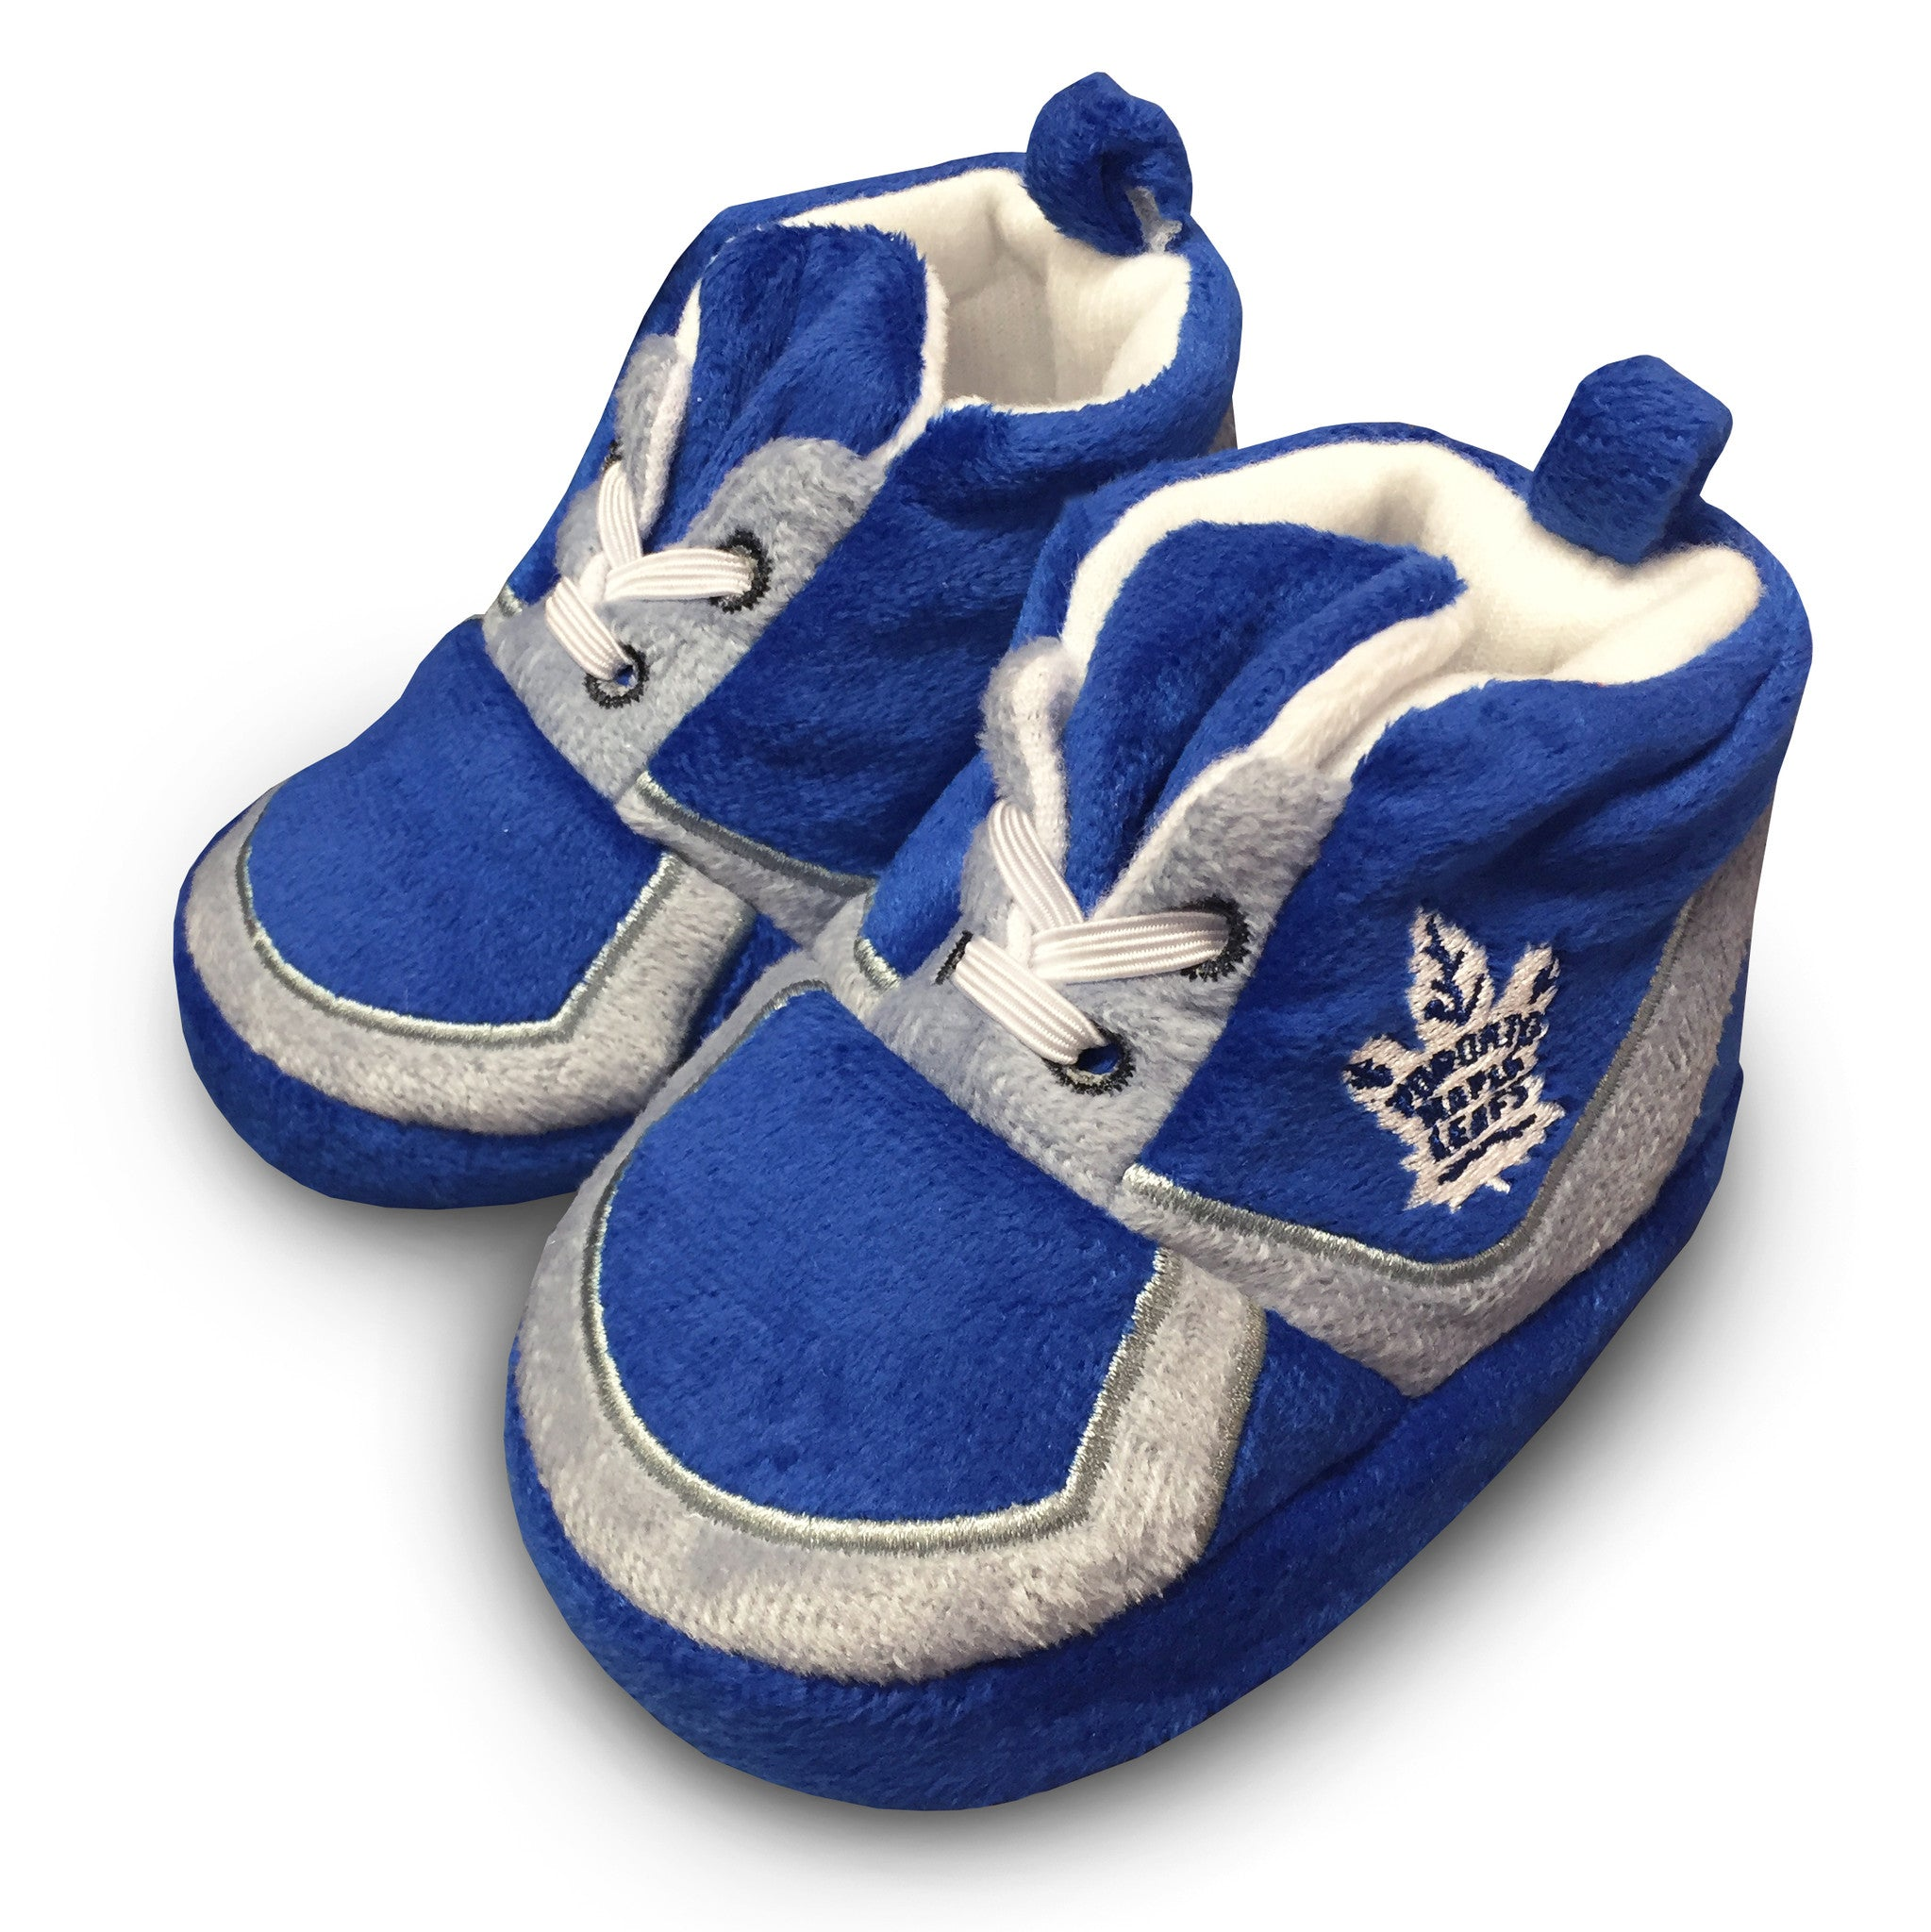 reputable site df8a4 a424d Toronto Maple Leafs Baby Sneakers